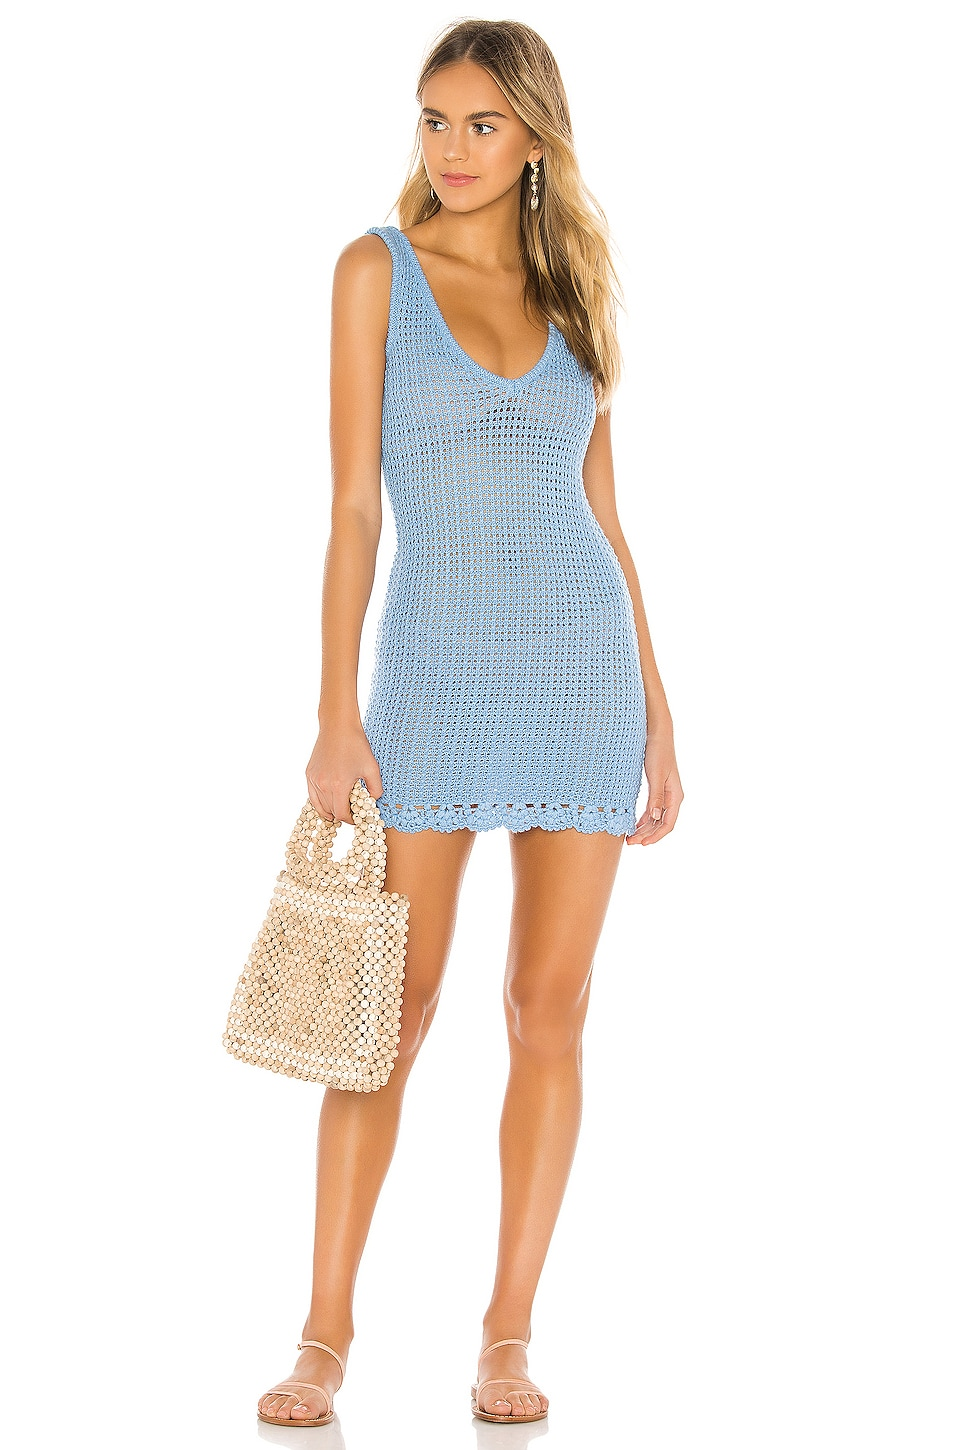 Tularosa Cyrus Dress in Blue